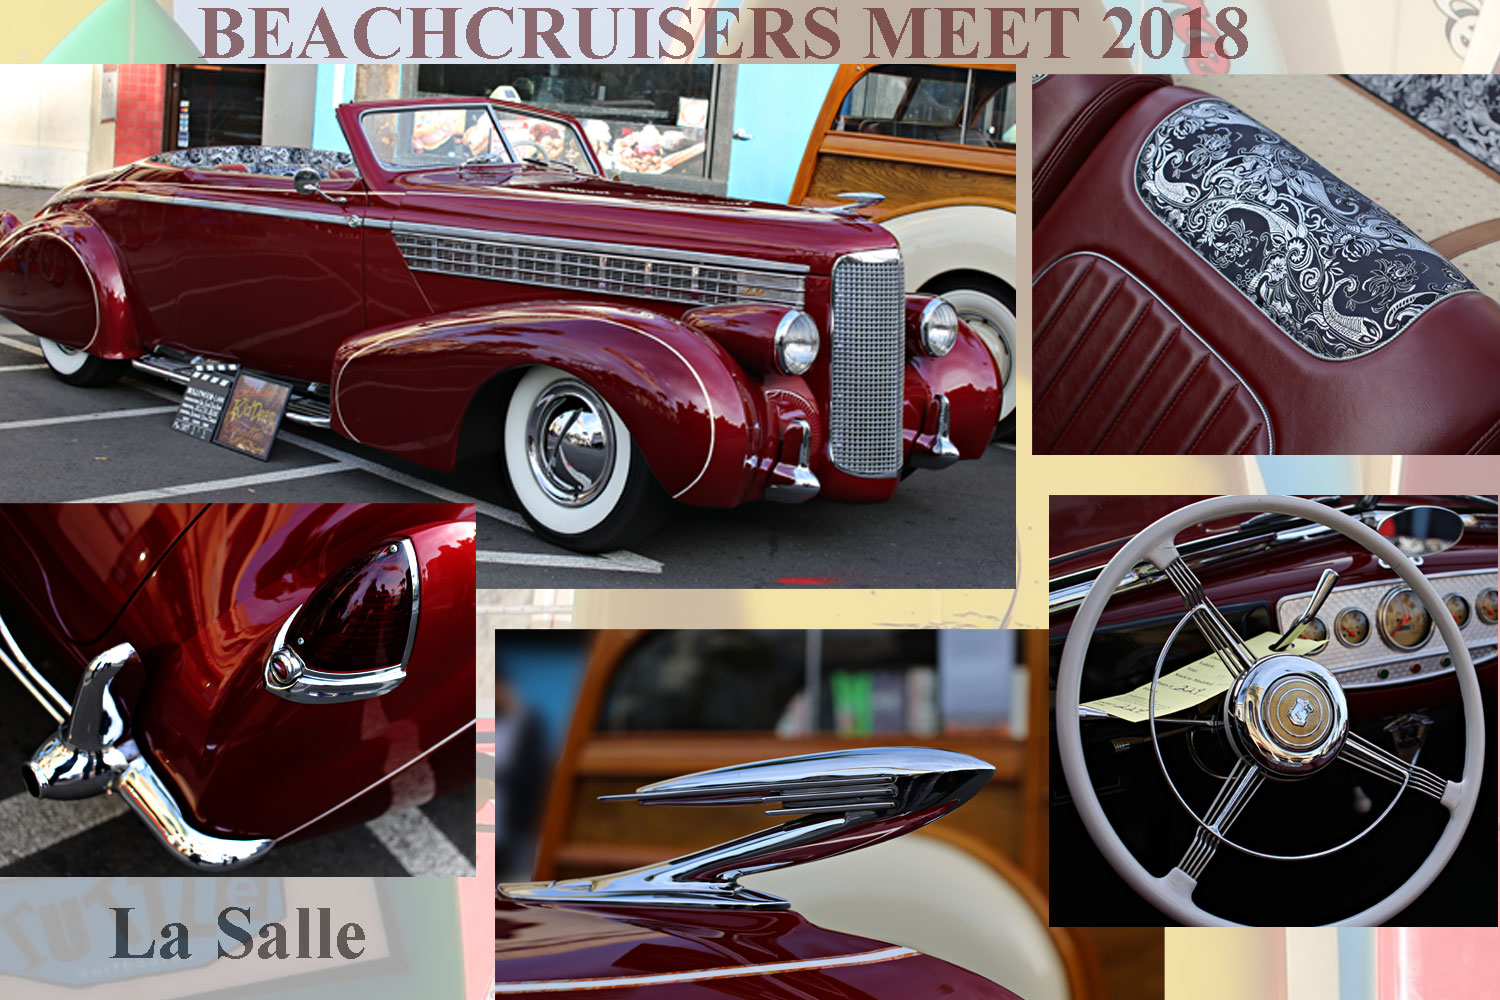 La Salle at the Beachcruisers Meet 2018 65bbq